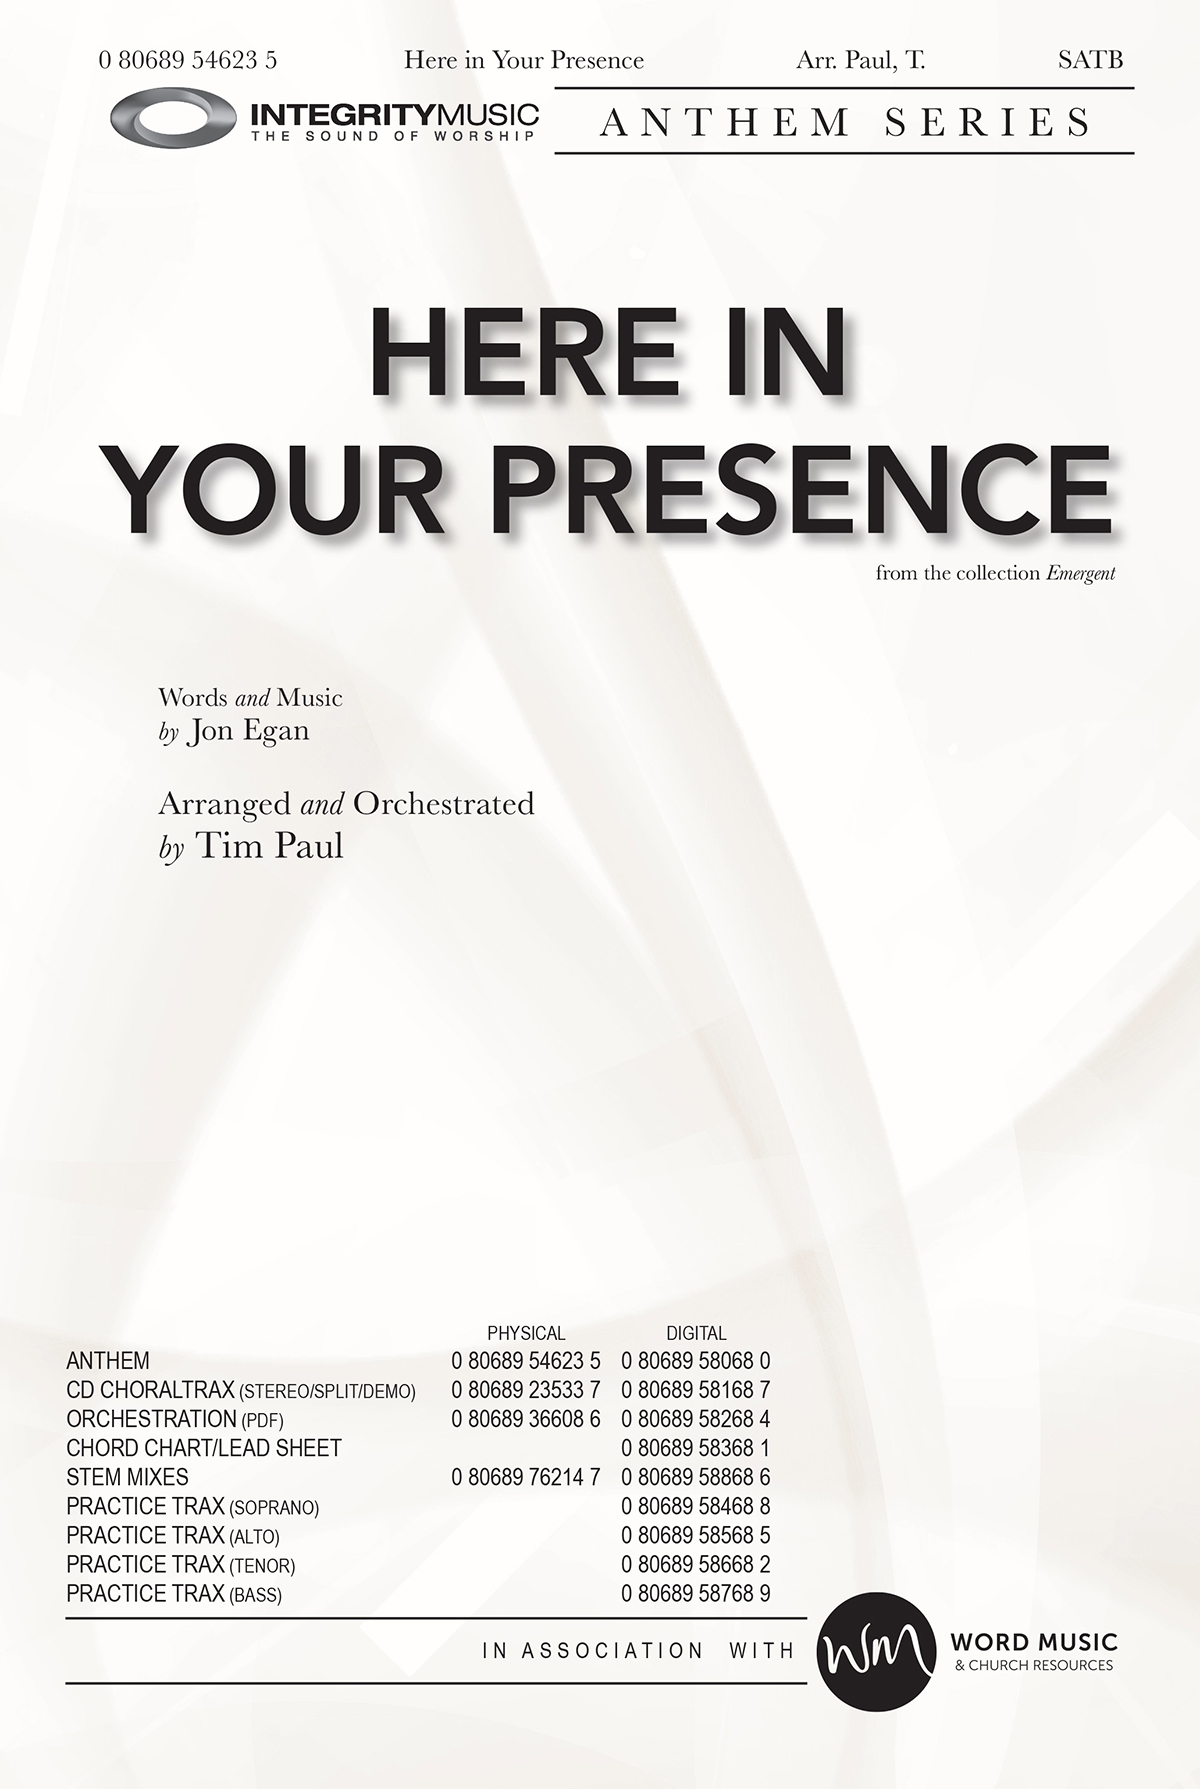 Here in Your Presence